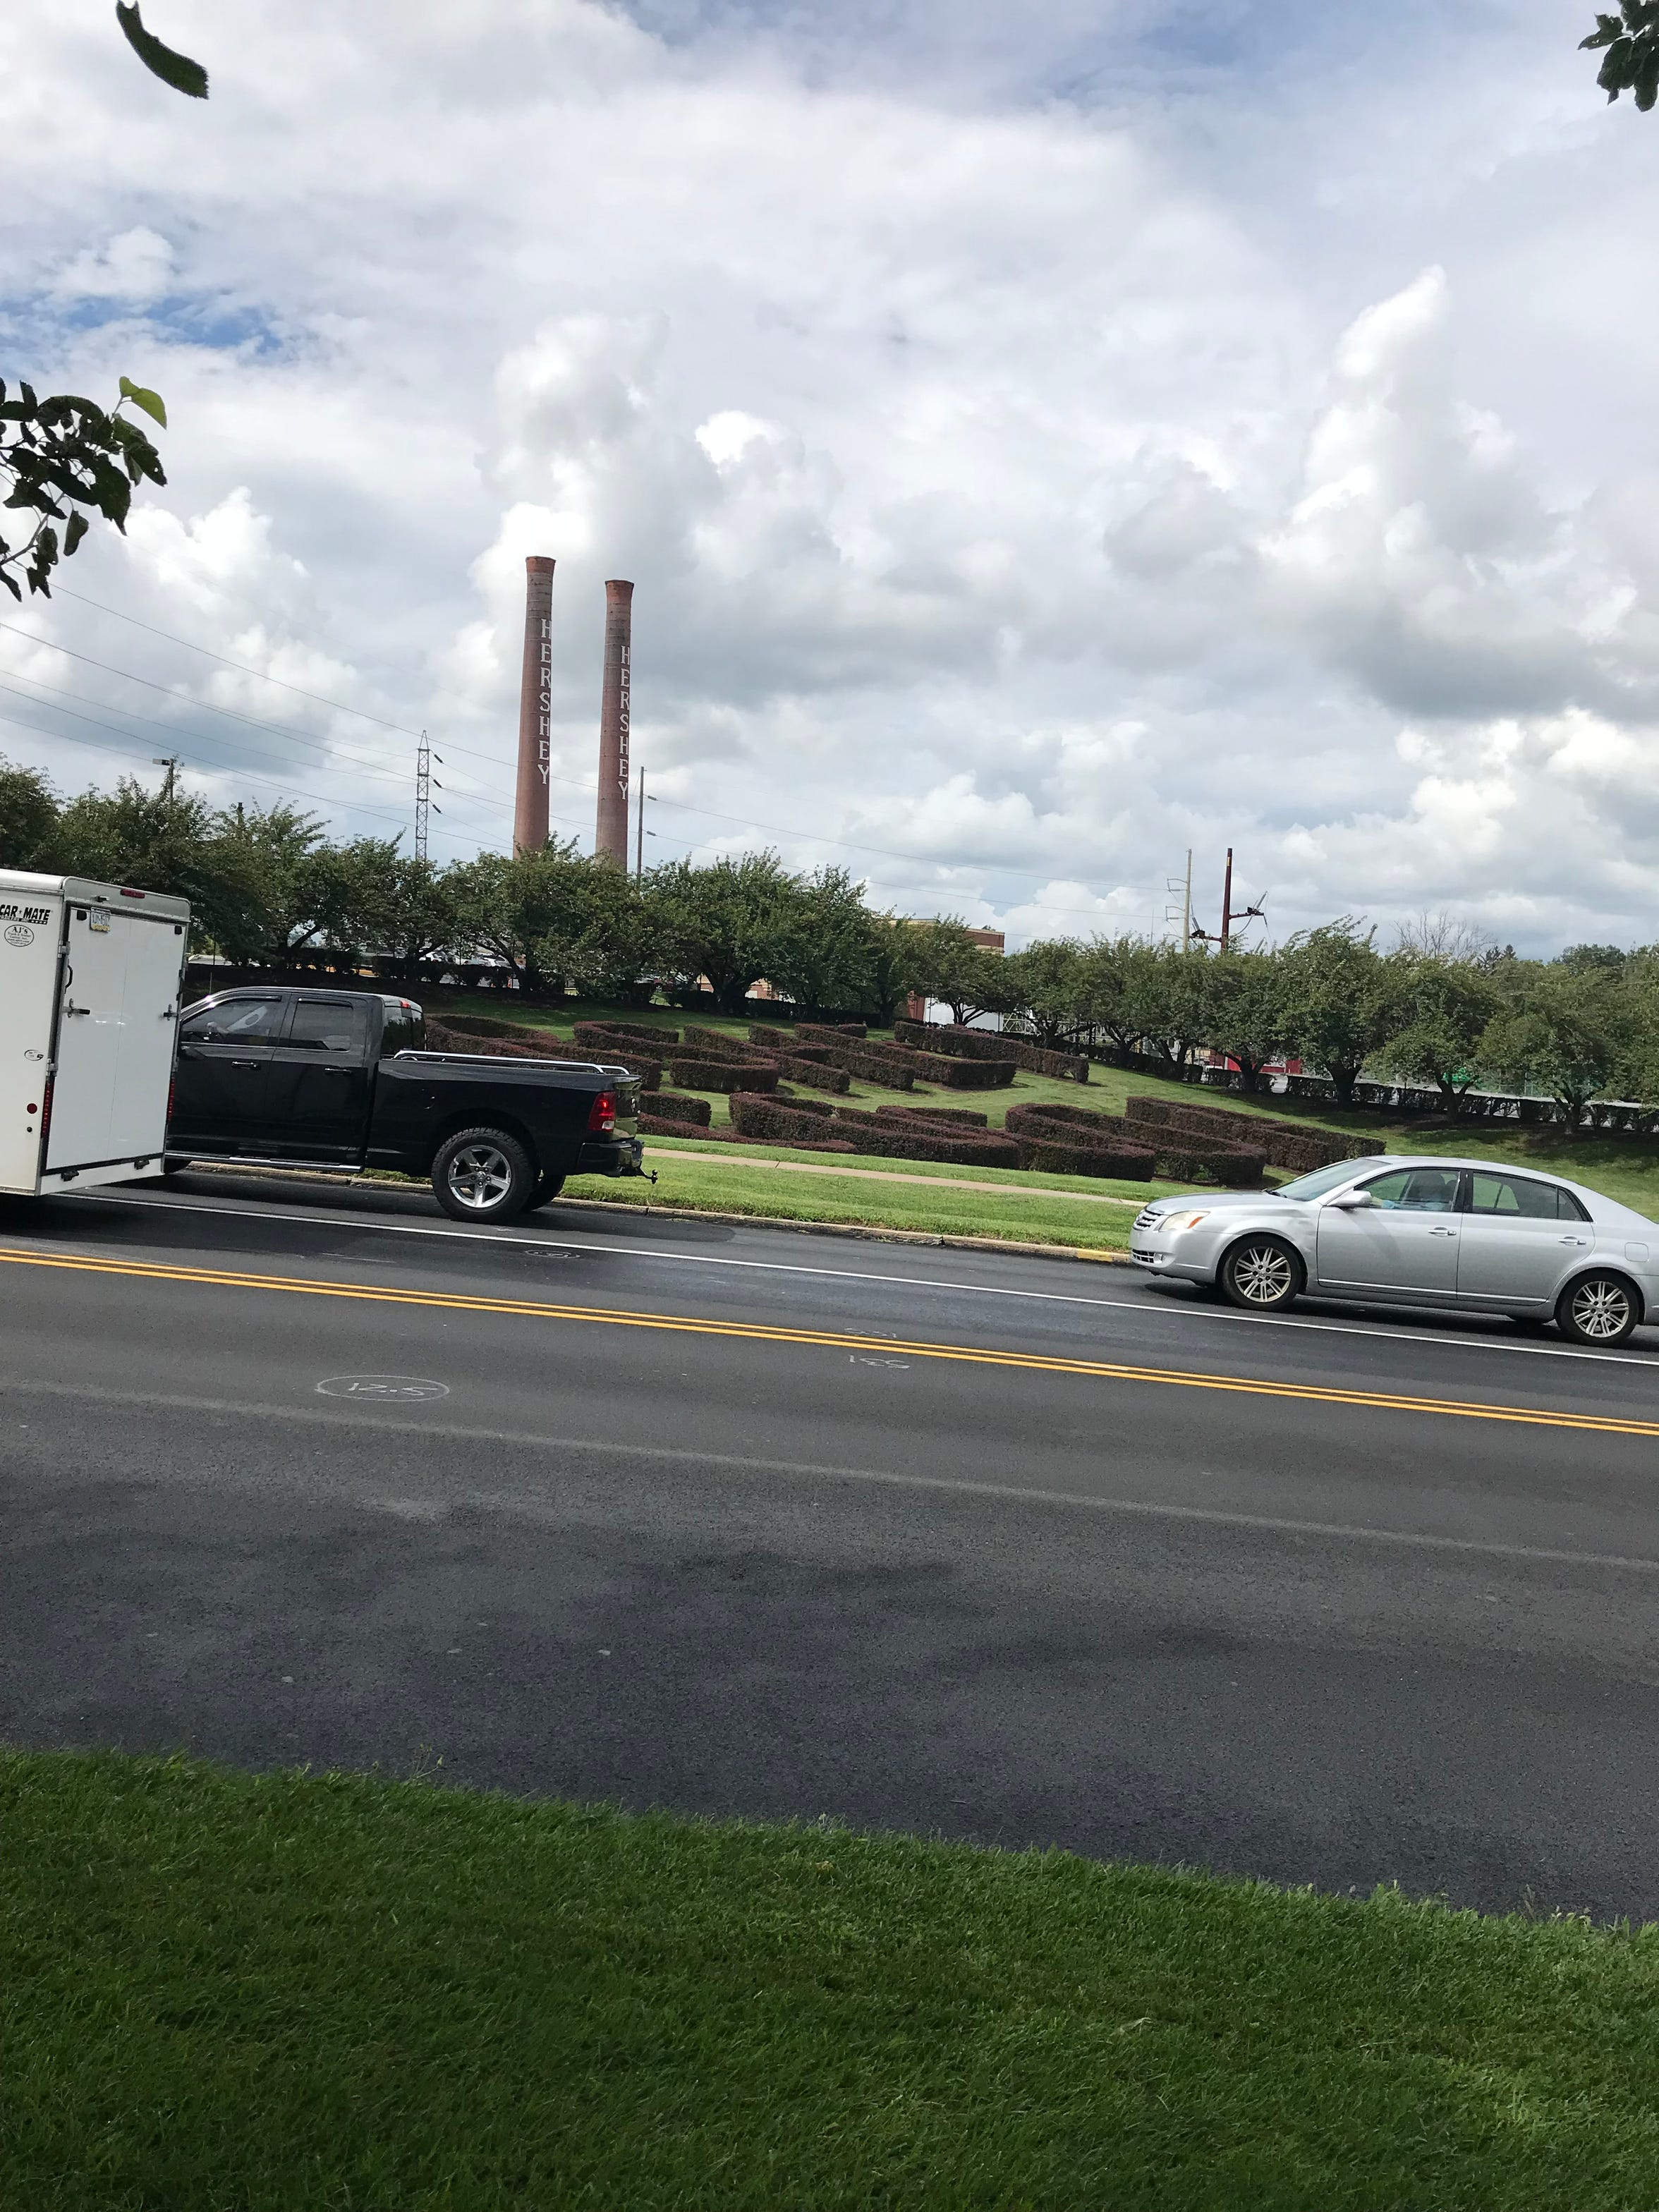 The iconic Hershey smokestacks and hedges, pictured on August 14, 2018.